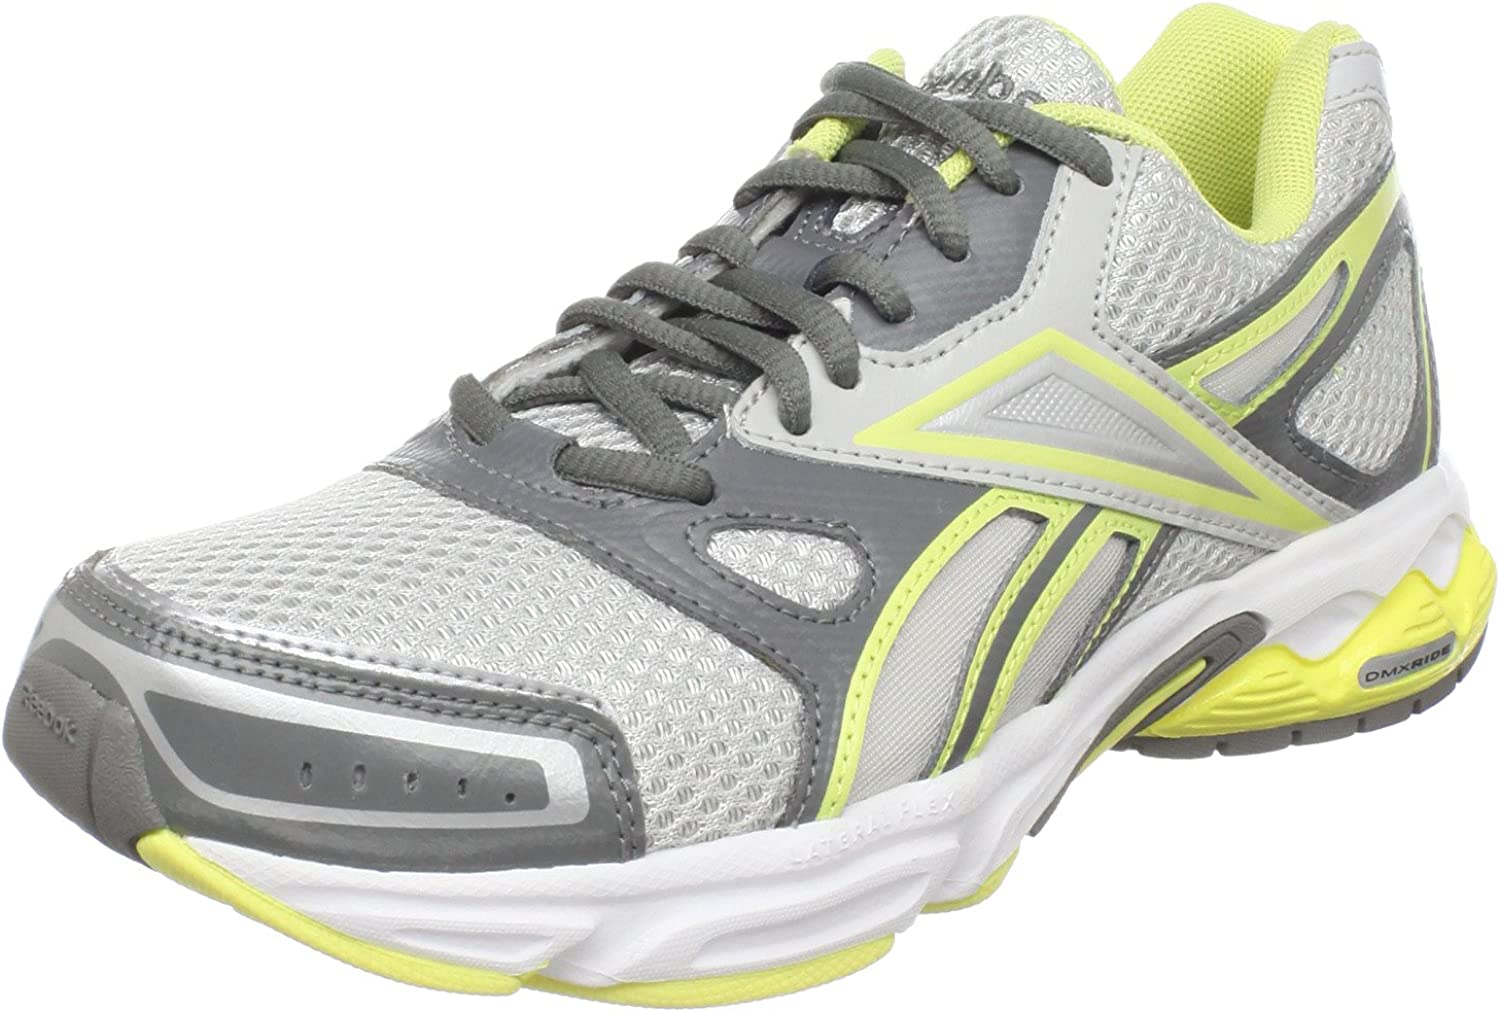 Reebok Women's Instant Running shoes Silver